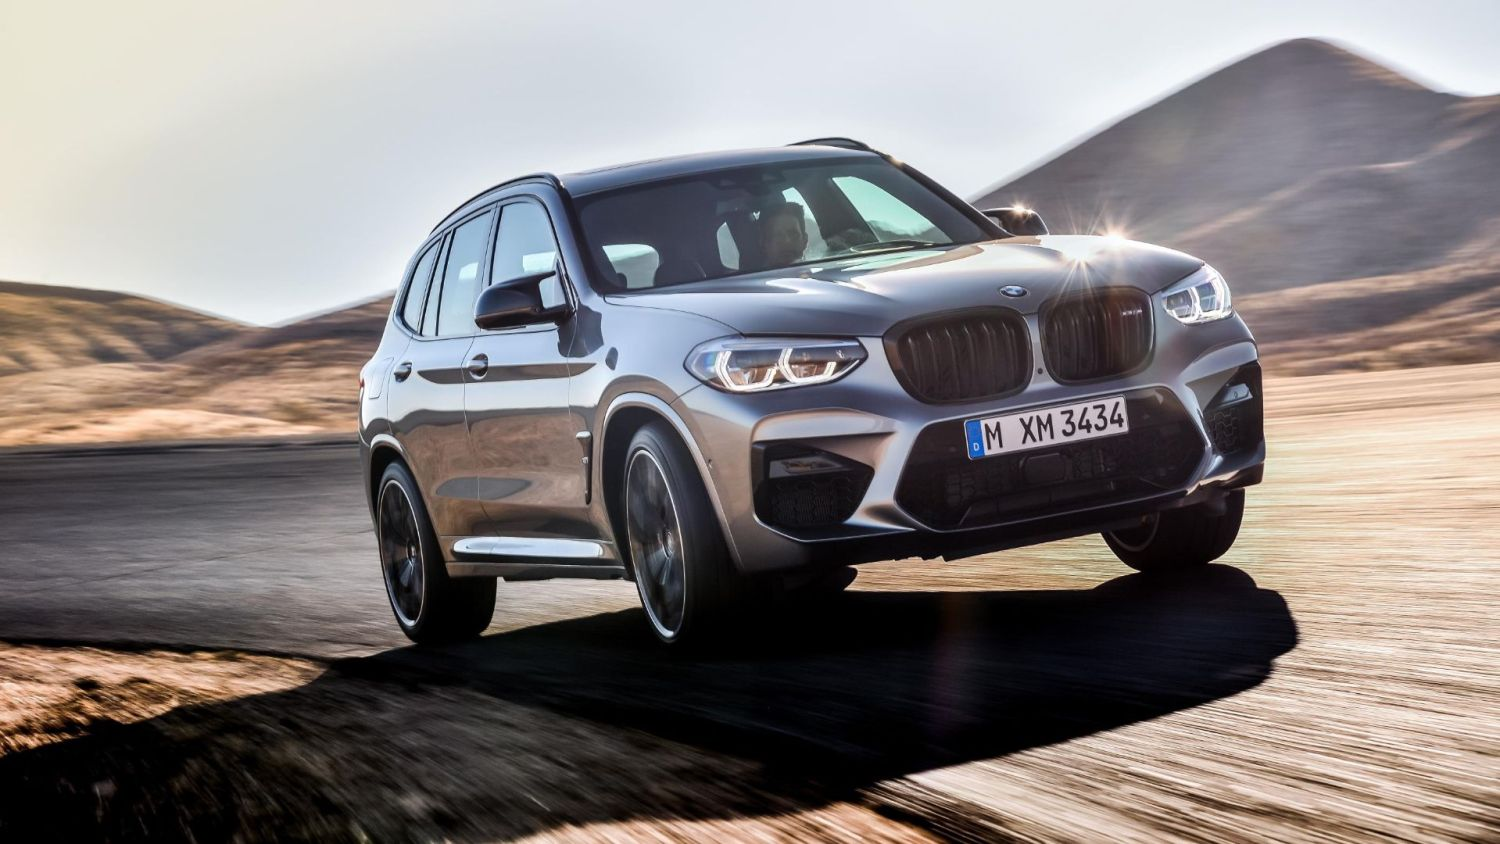 The Bmw X4 M Could Be Hiding The Next M3 S Heart Motoring Research